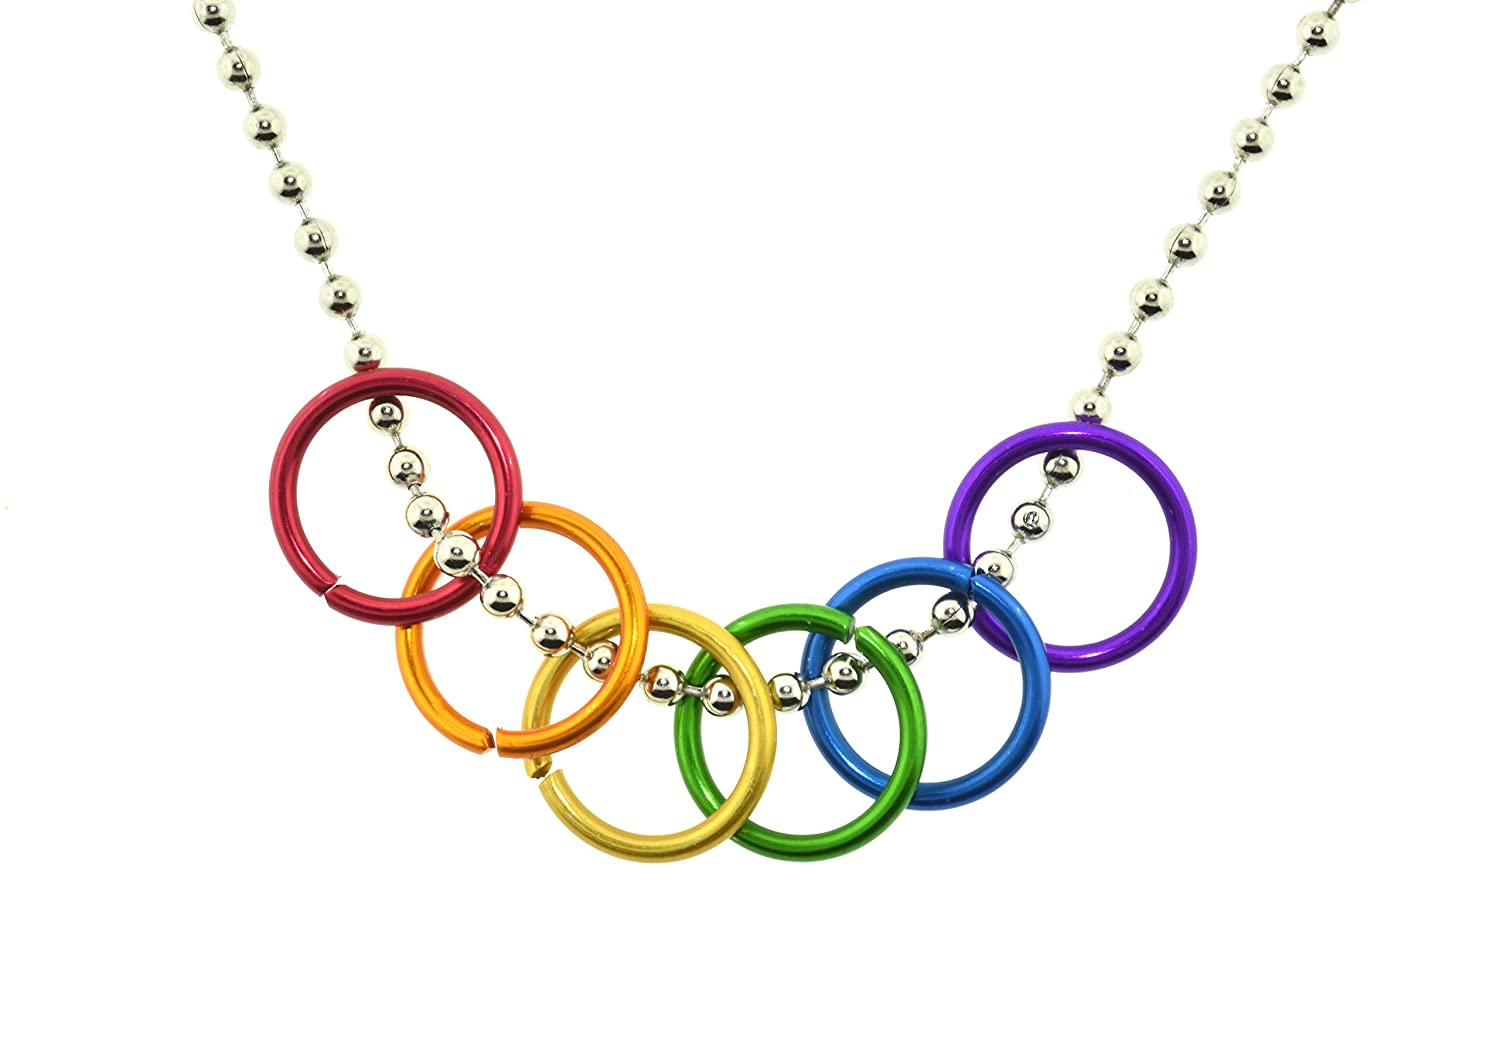 products kids ltd baby munchables final necklace full necklaces web rainbow essentials